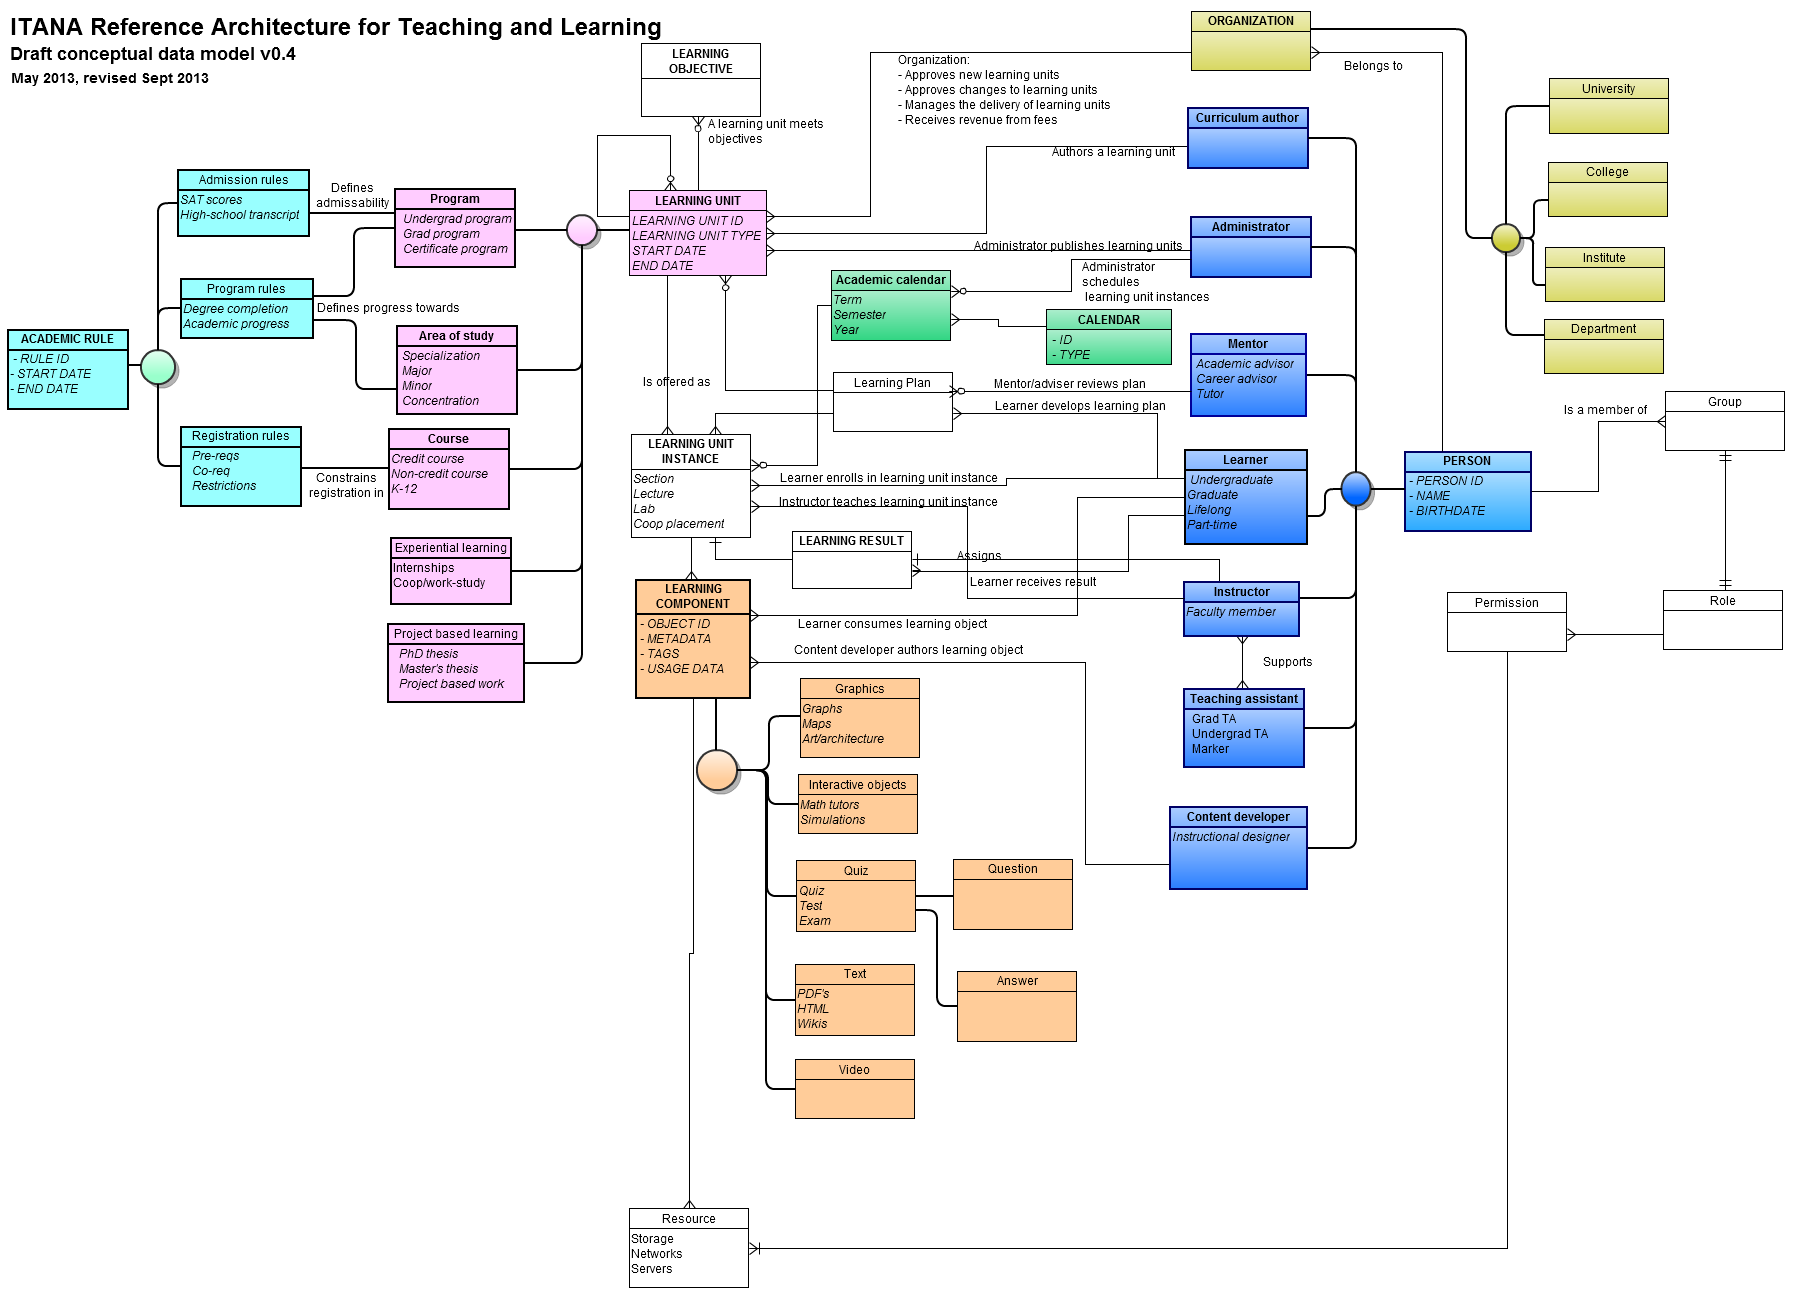 Conceptual Model Png - Confluence Mobile - Internet2 Wiki